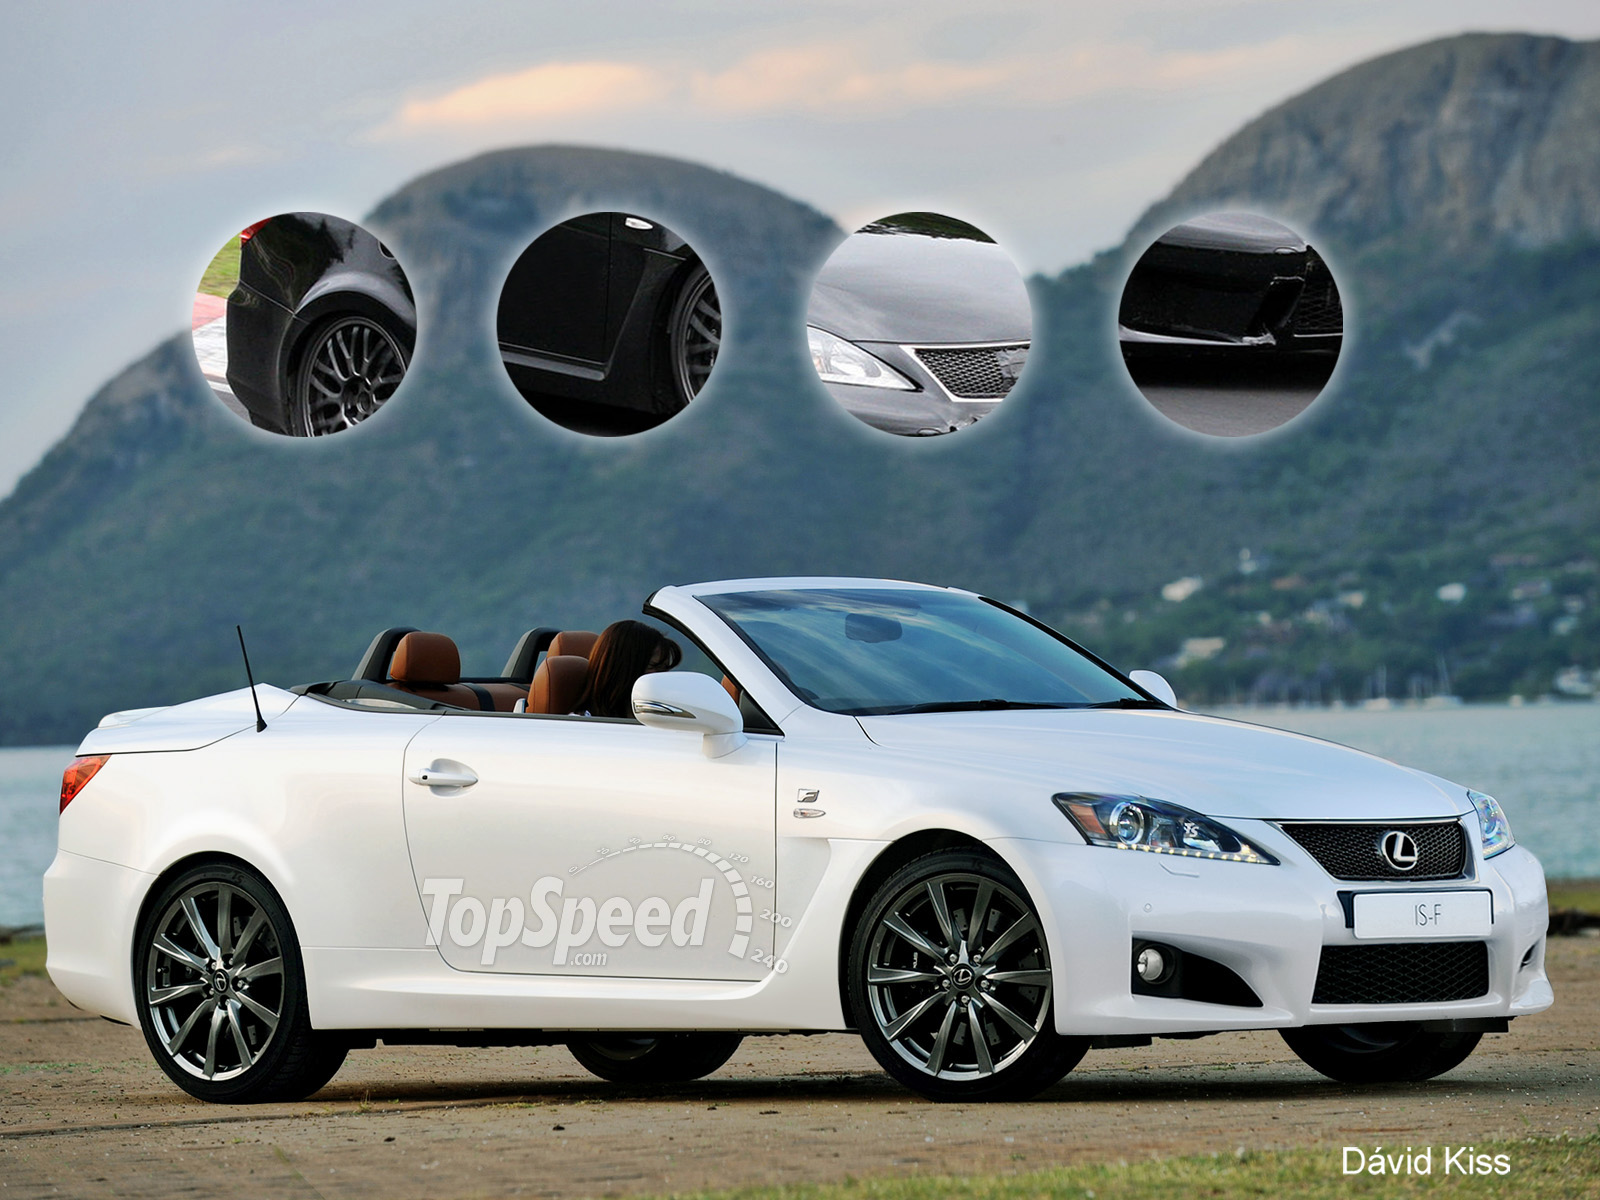 2013 lexus is f convertible review gallery top speed. Black Bedroom Furniture Sets. Home Design Ideas